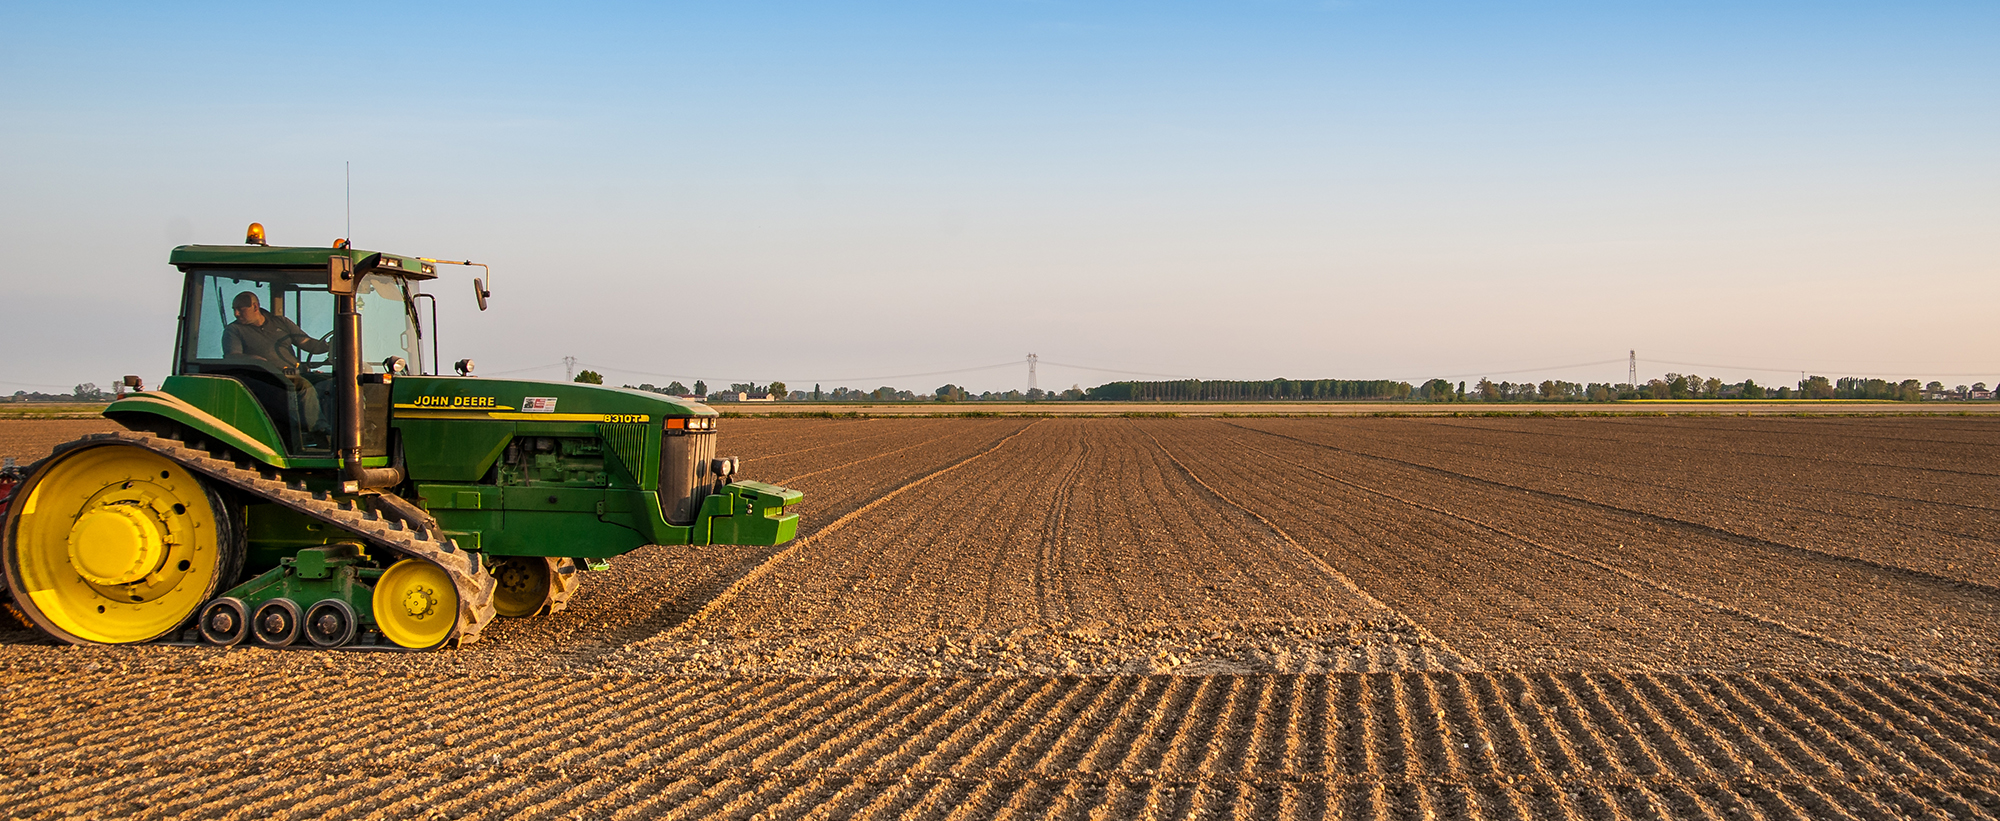 Minimizing hazards in the agricultural industry